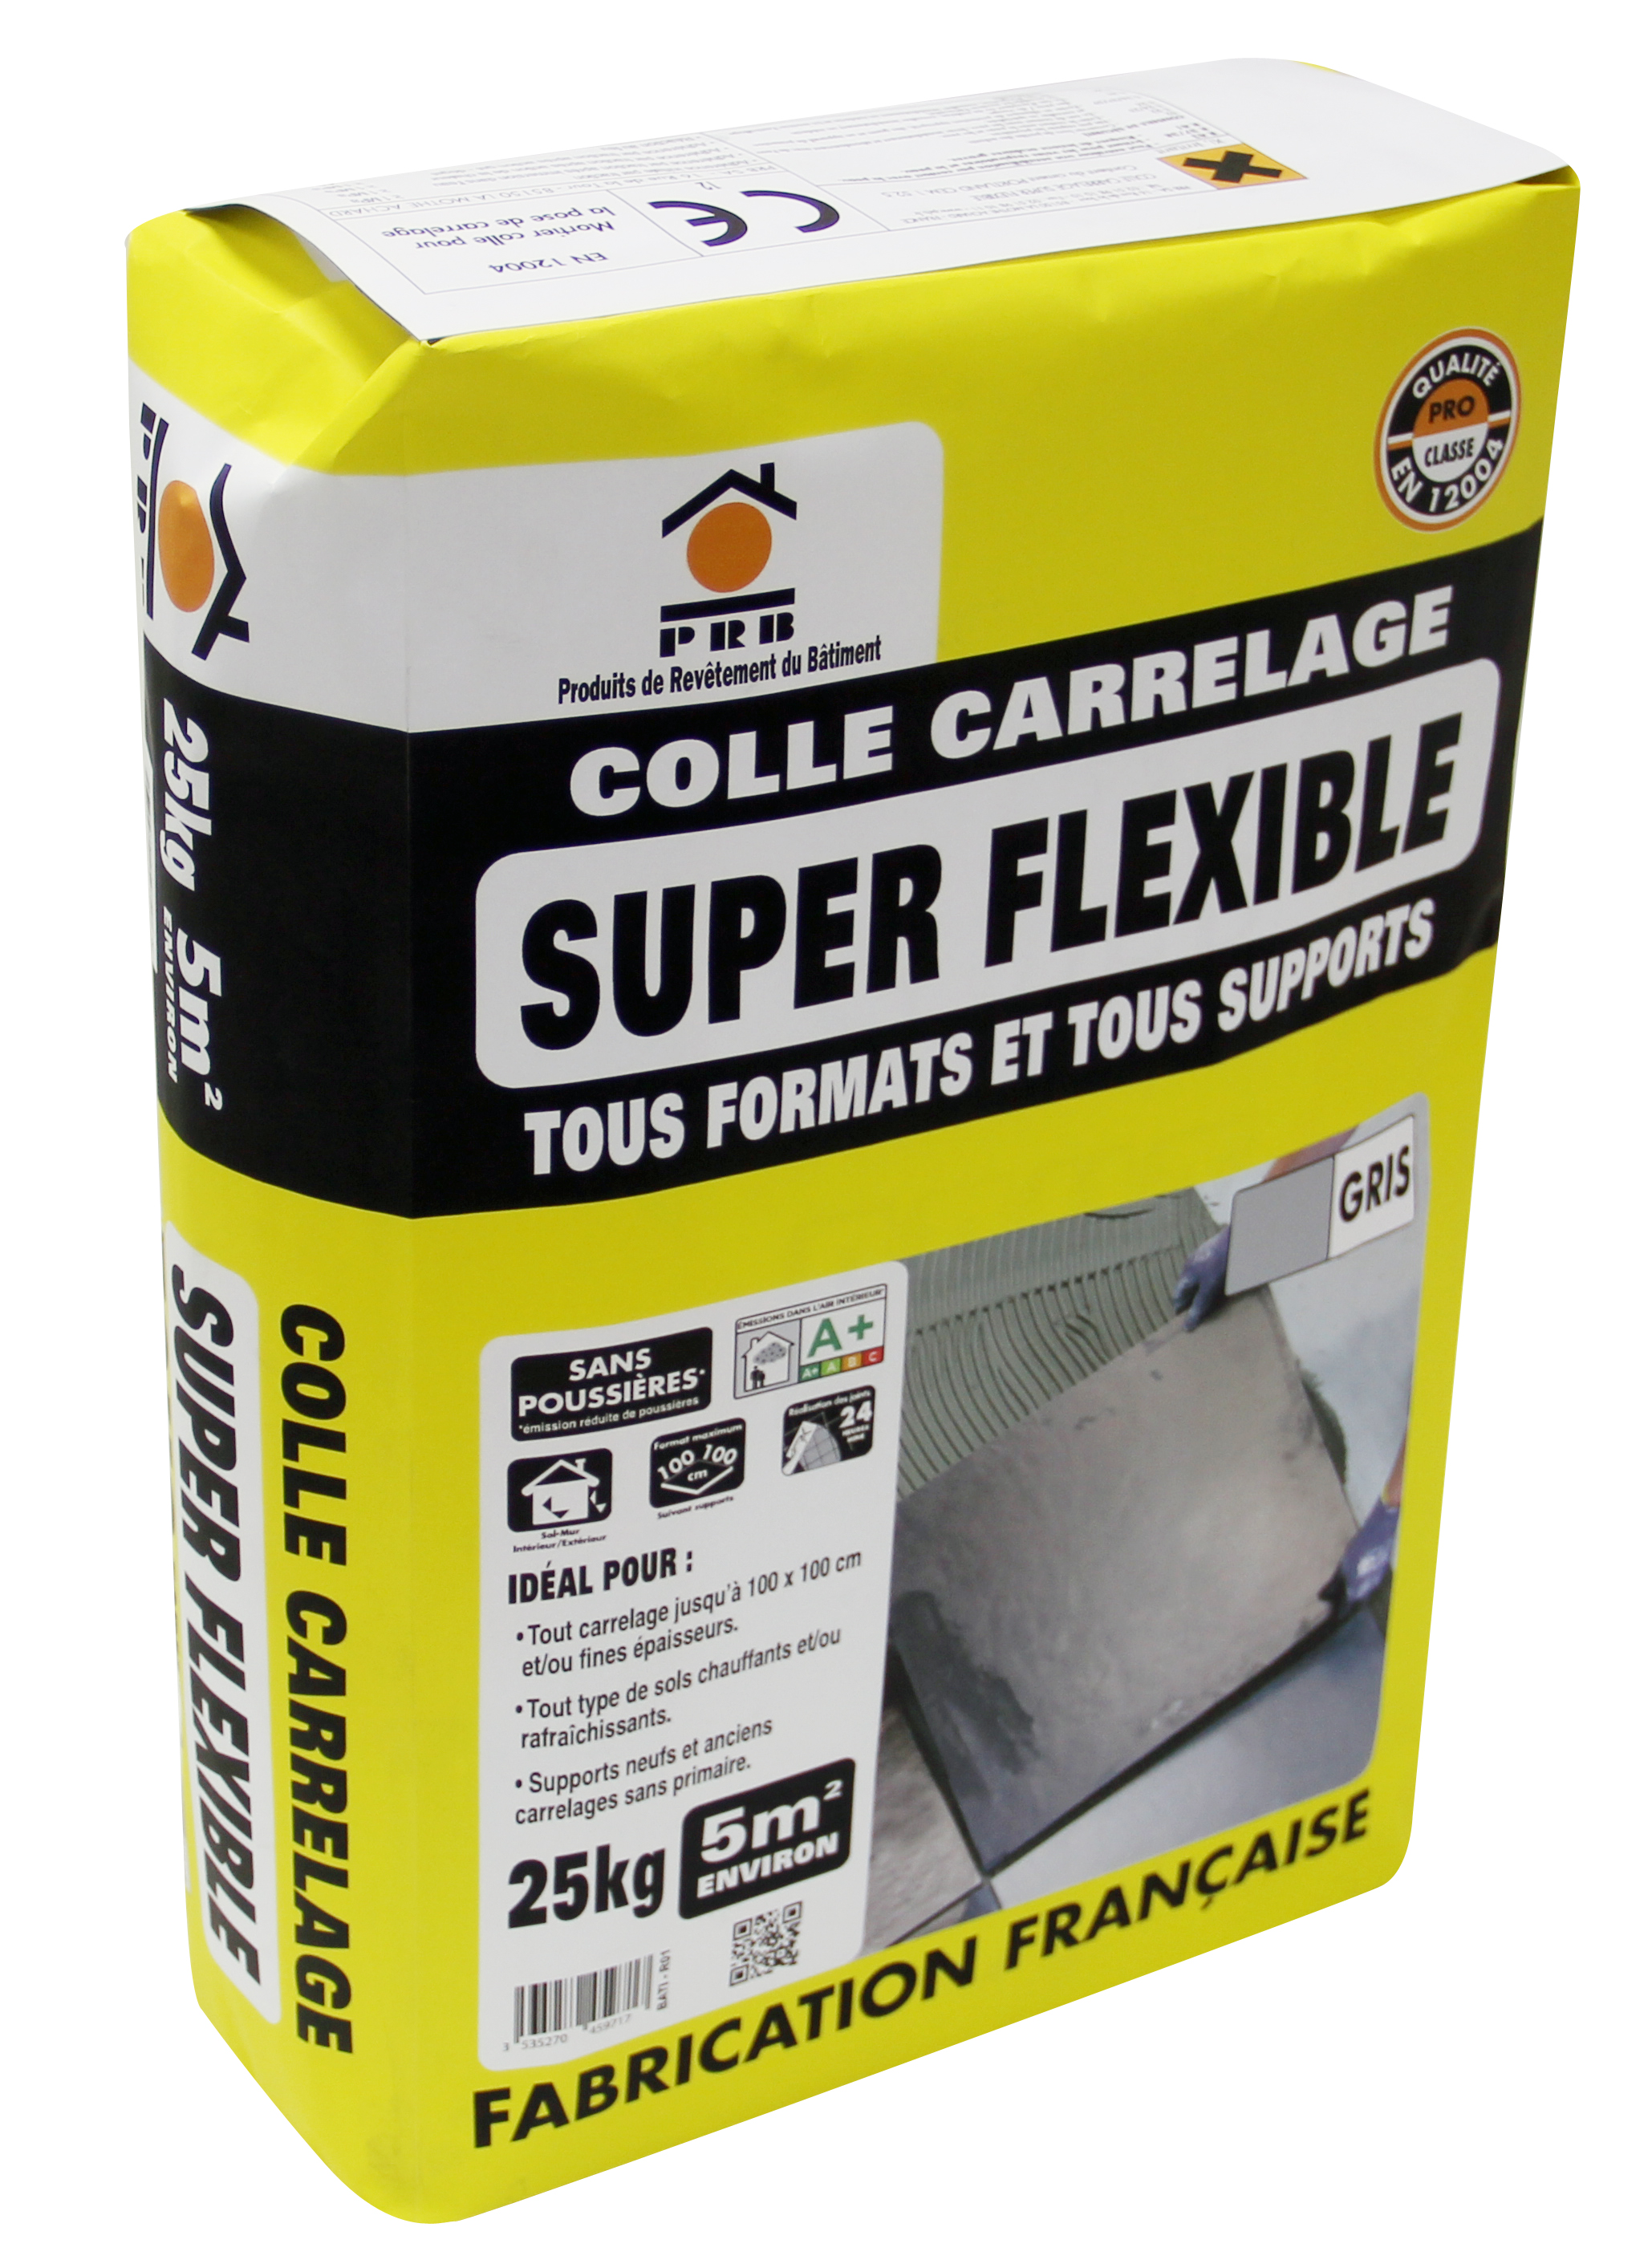 Lmb for Colle carrelage flexible